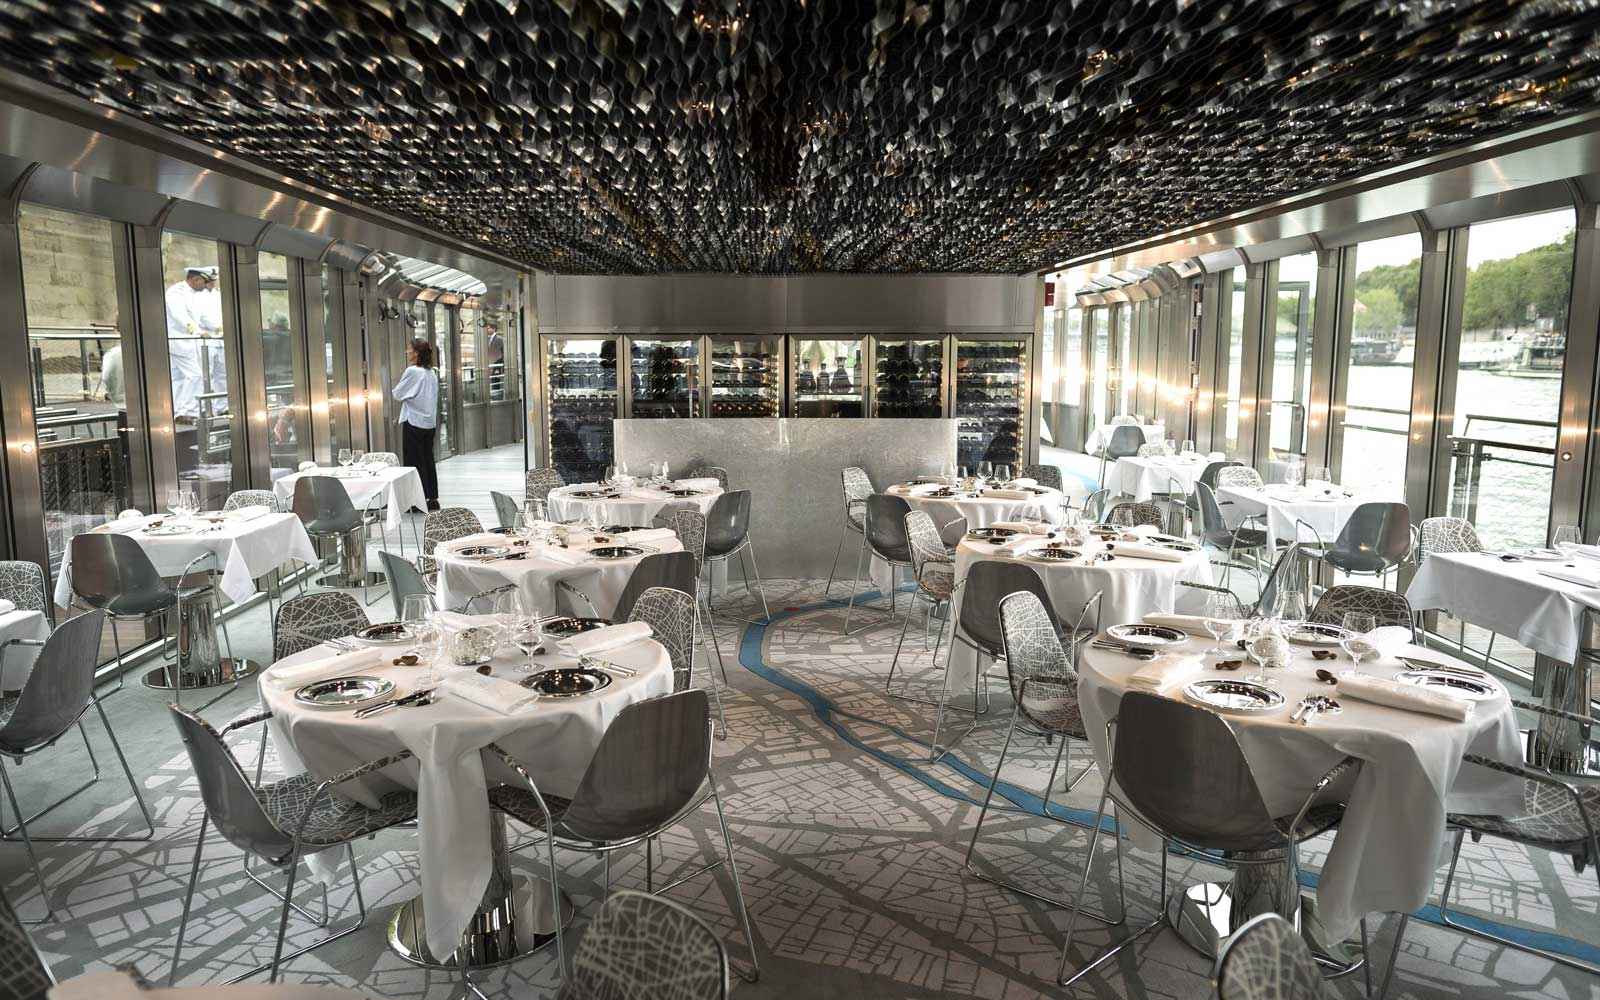 Dressed tables are seen at Alain Ducasse's new boat restaurant, the